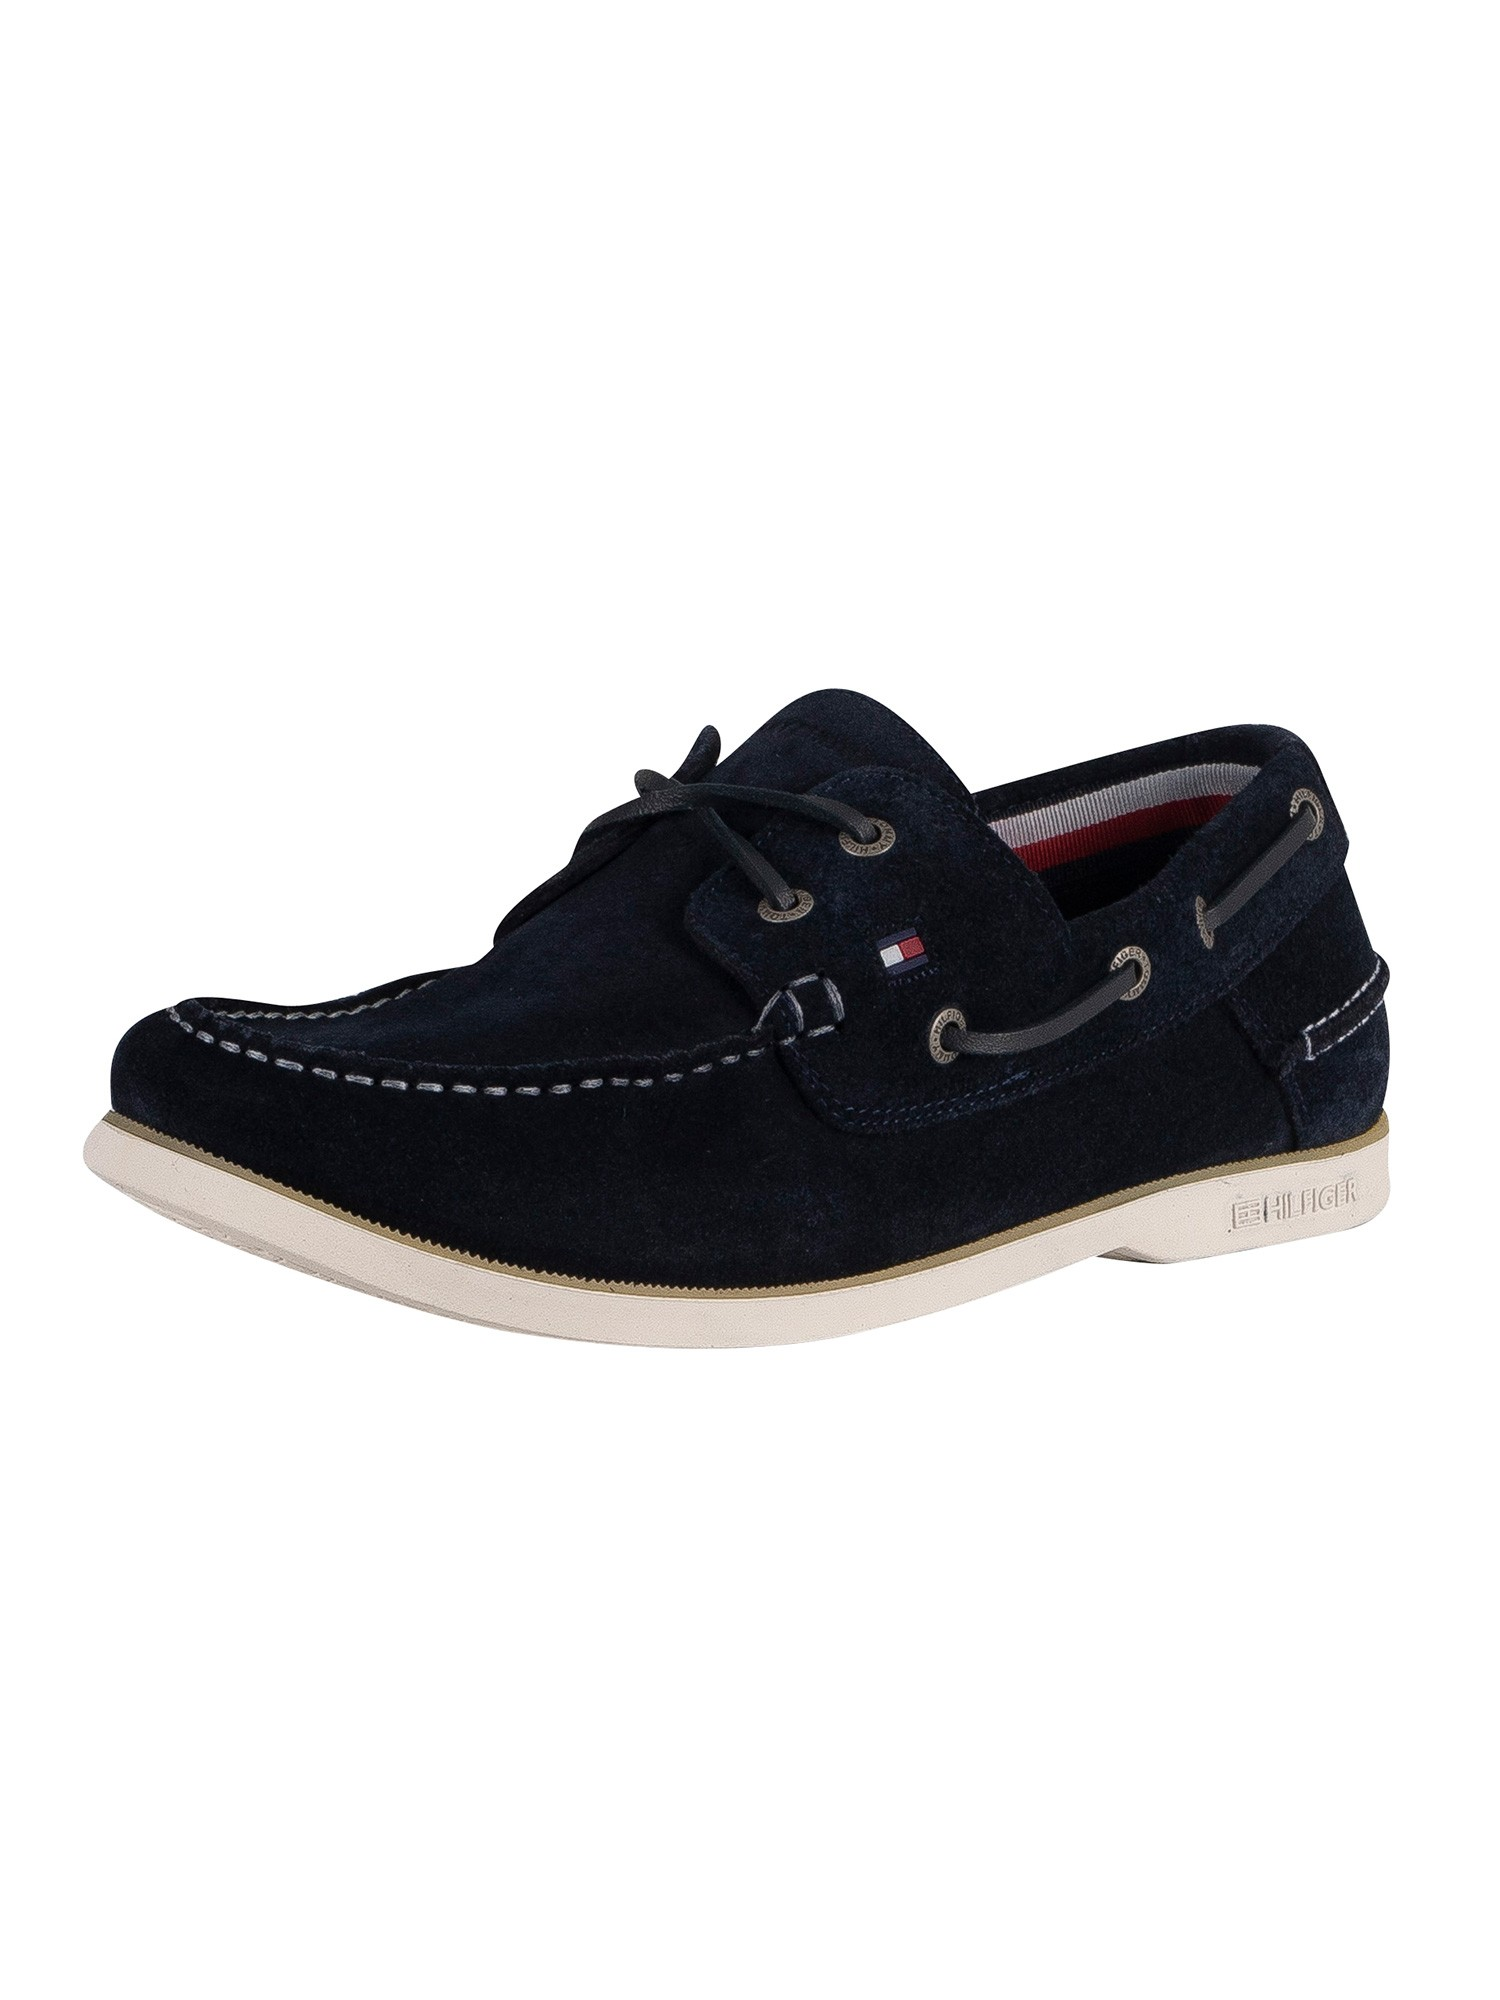 Tommy Hilfiger Classic Suede Boat Shoes - Desert Sky